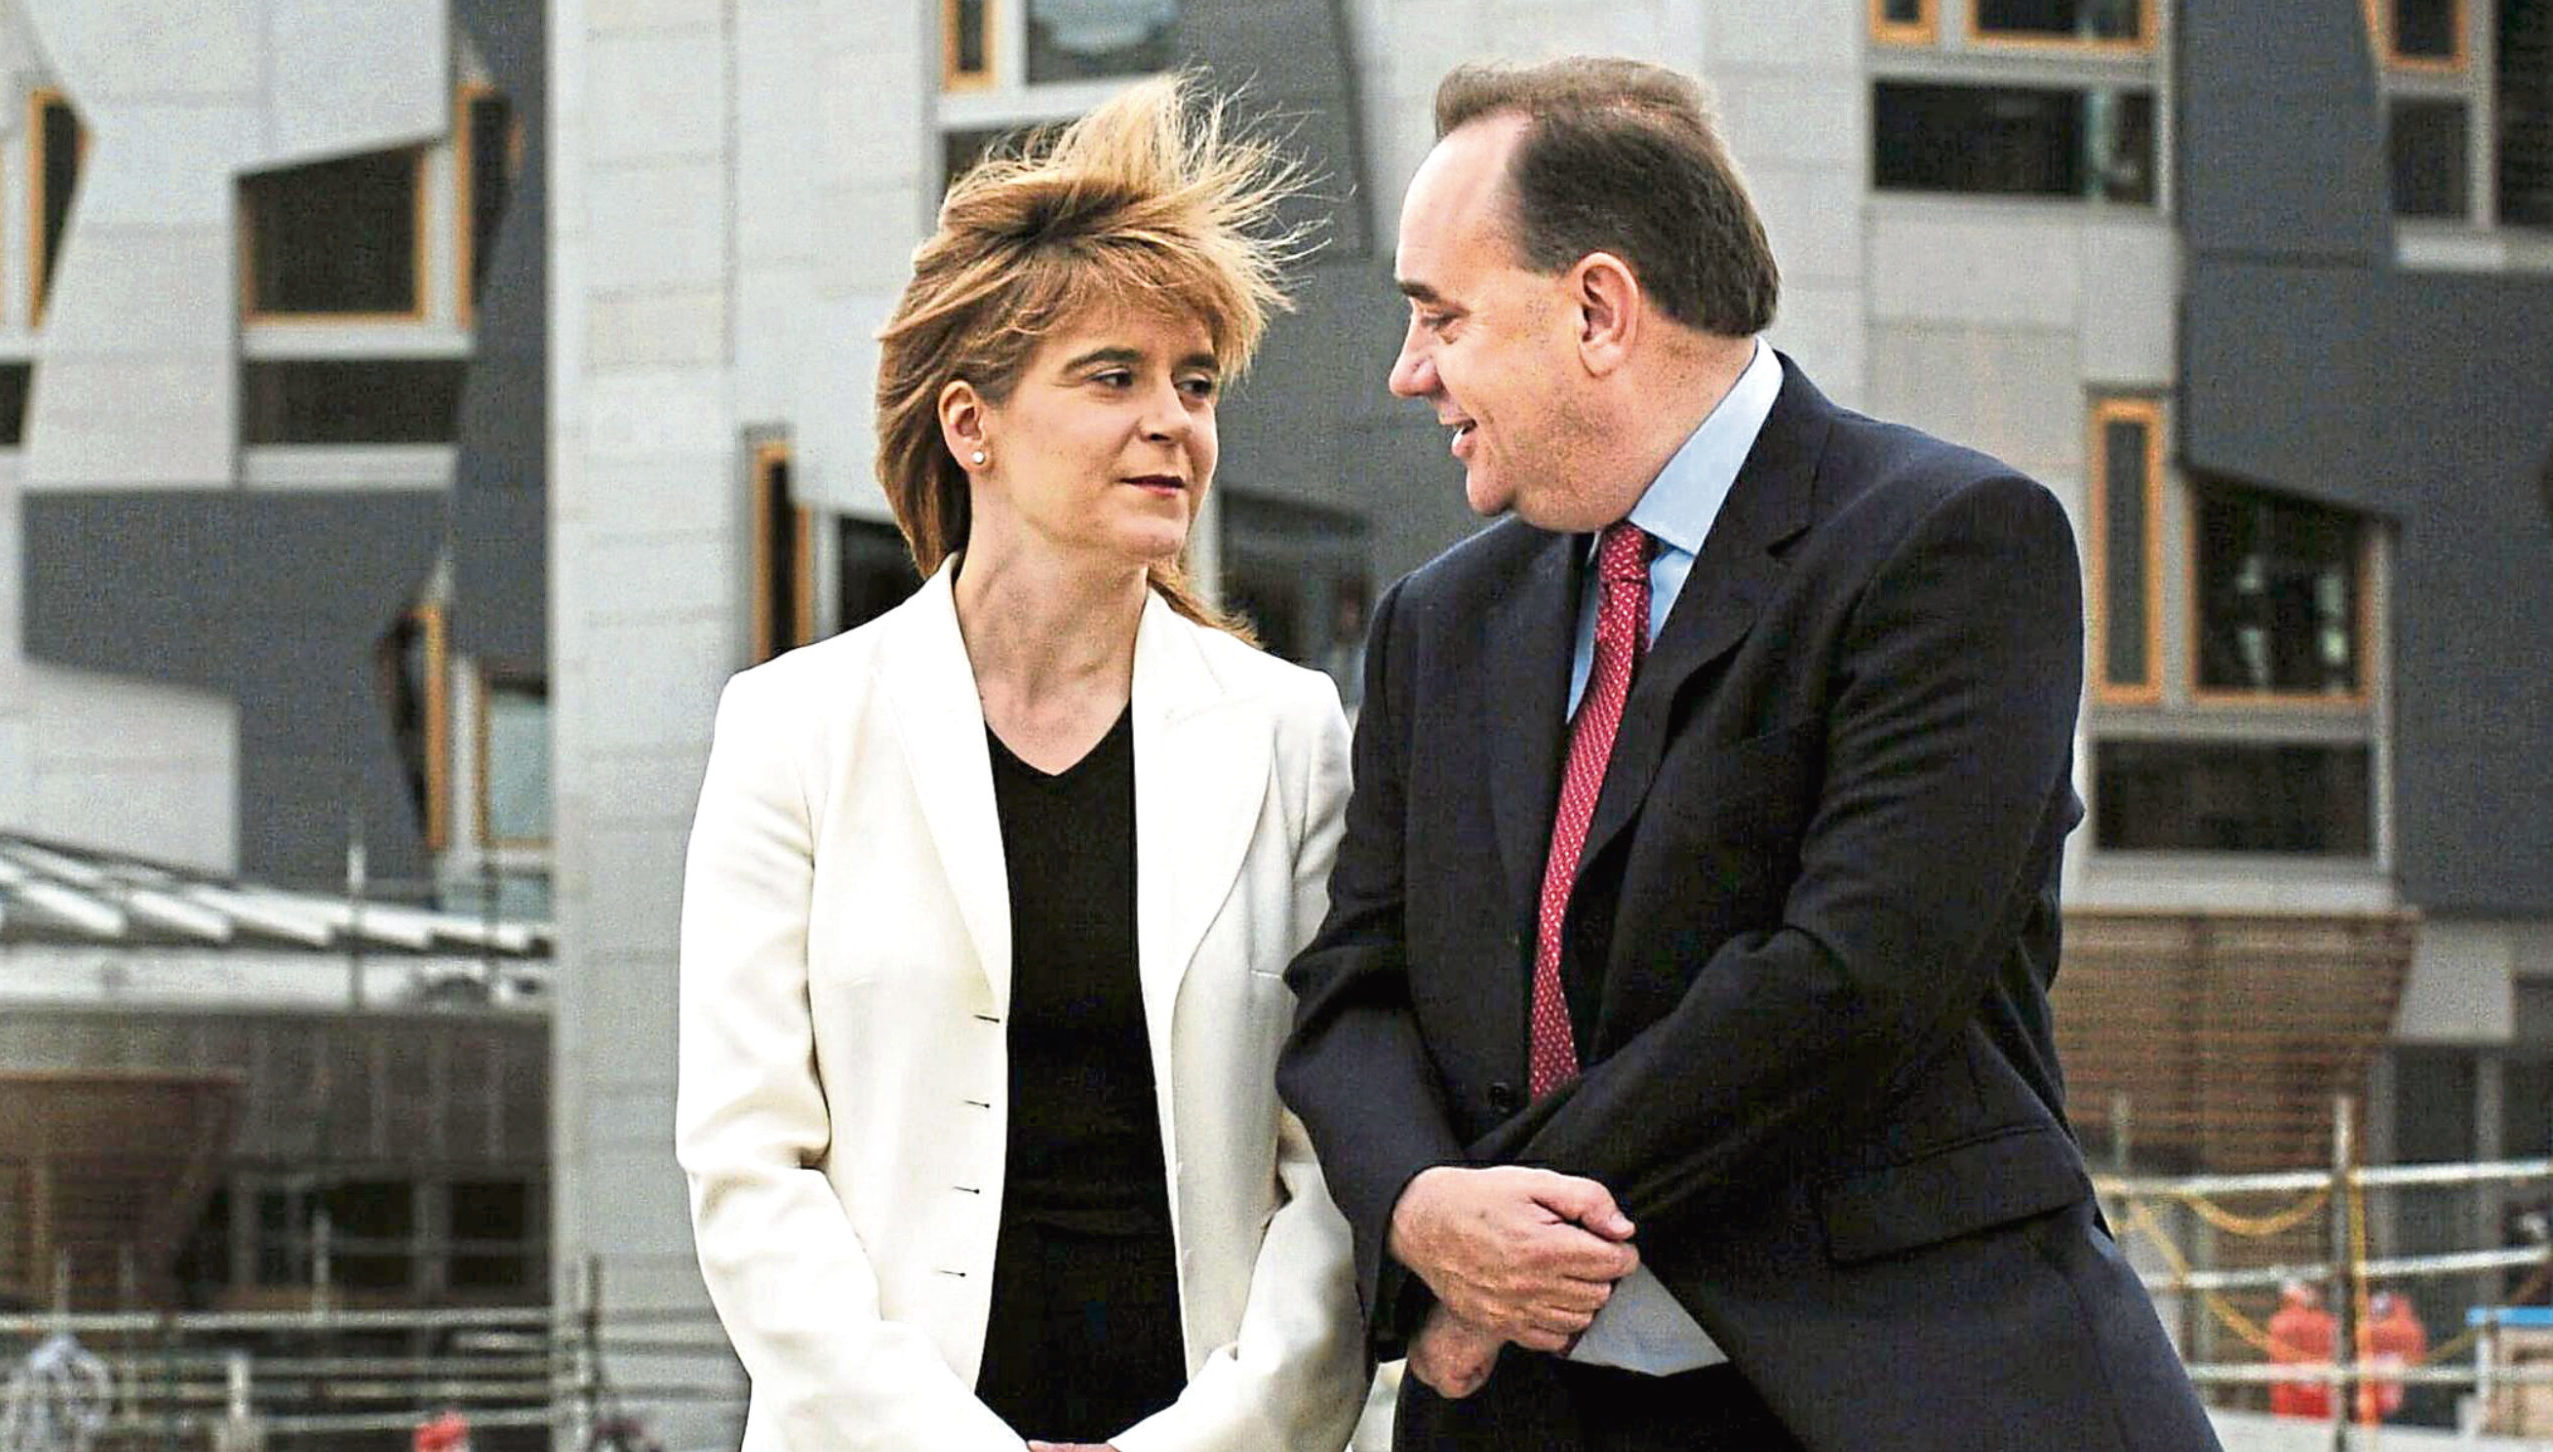 Nicola Sturgeon and Alex Salmond.